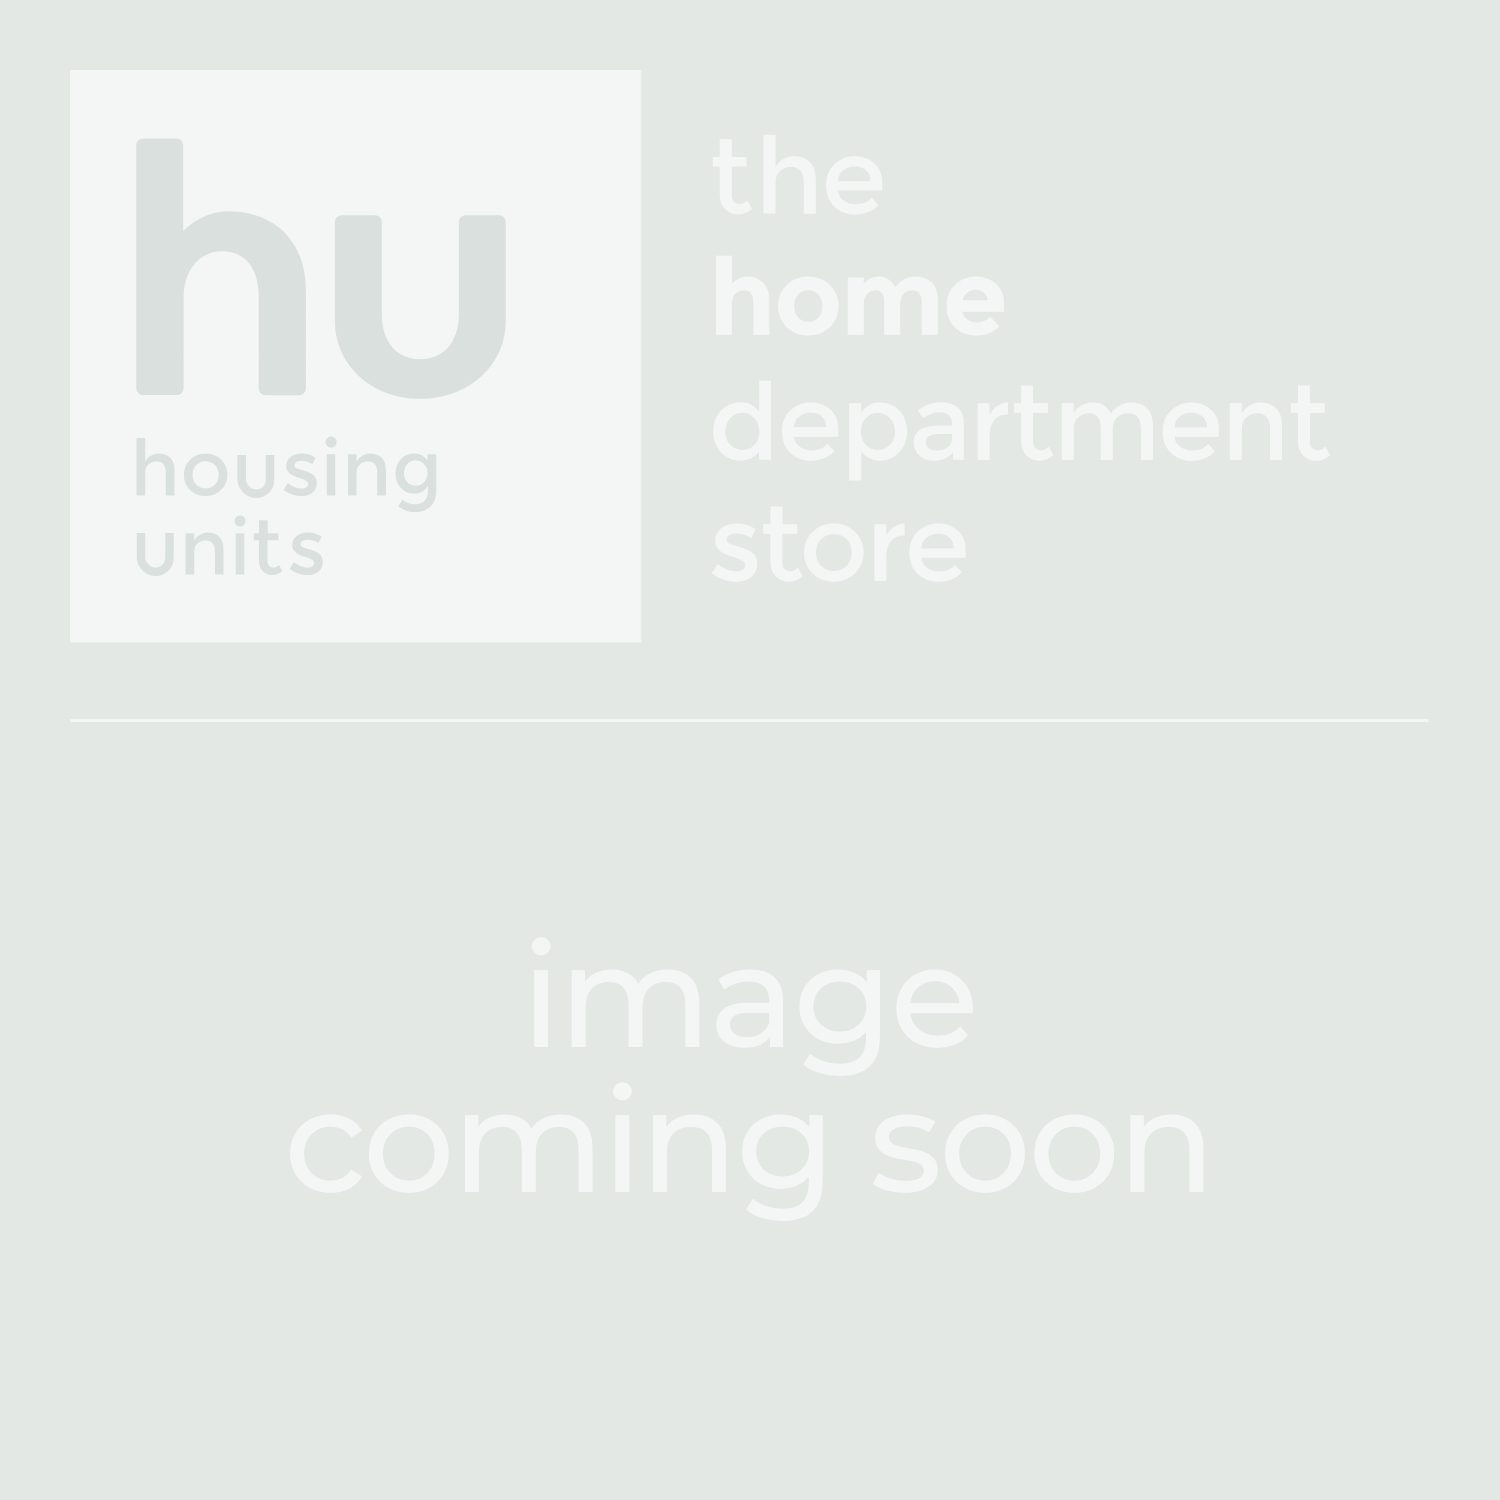 Celine Crystal & Gold 4 Light Semi Flush Ceiling Light | Housing Units